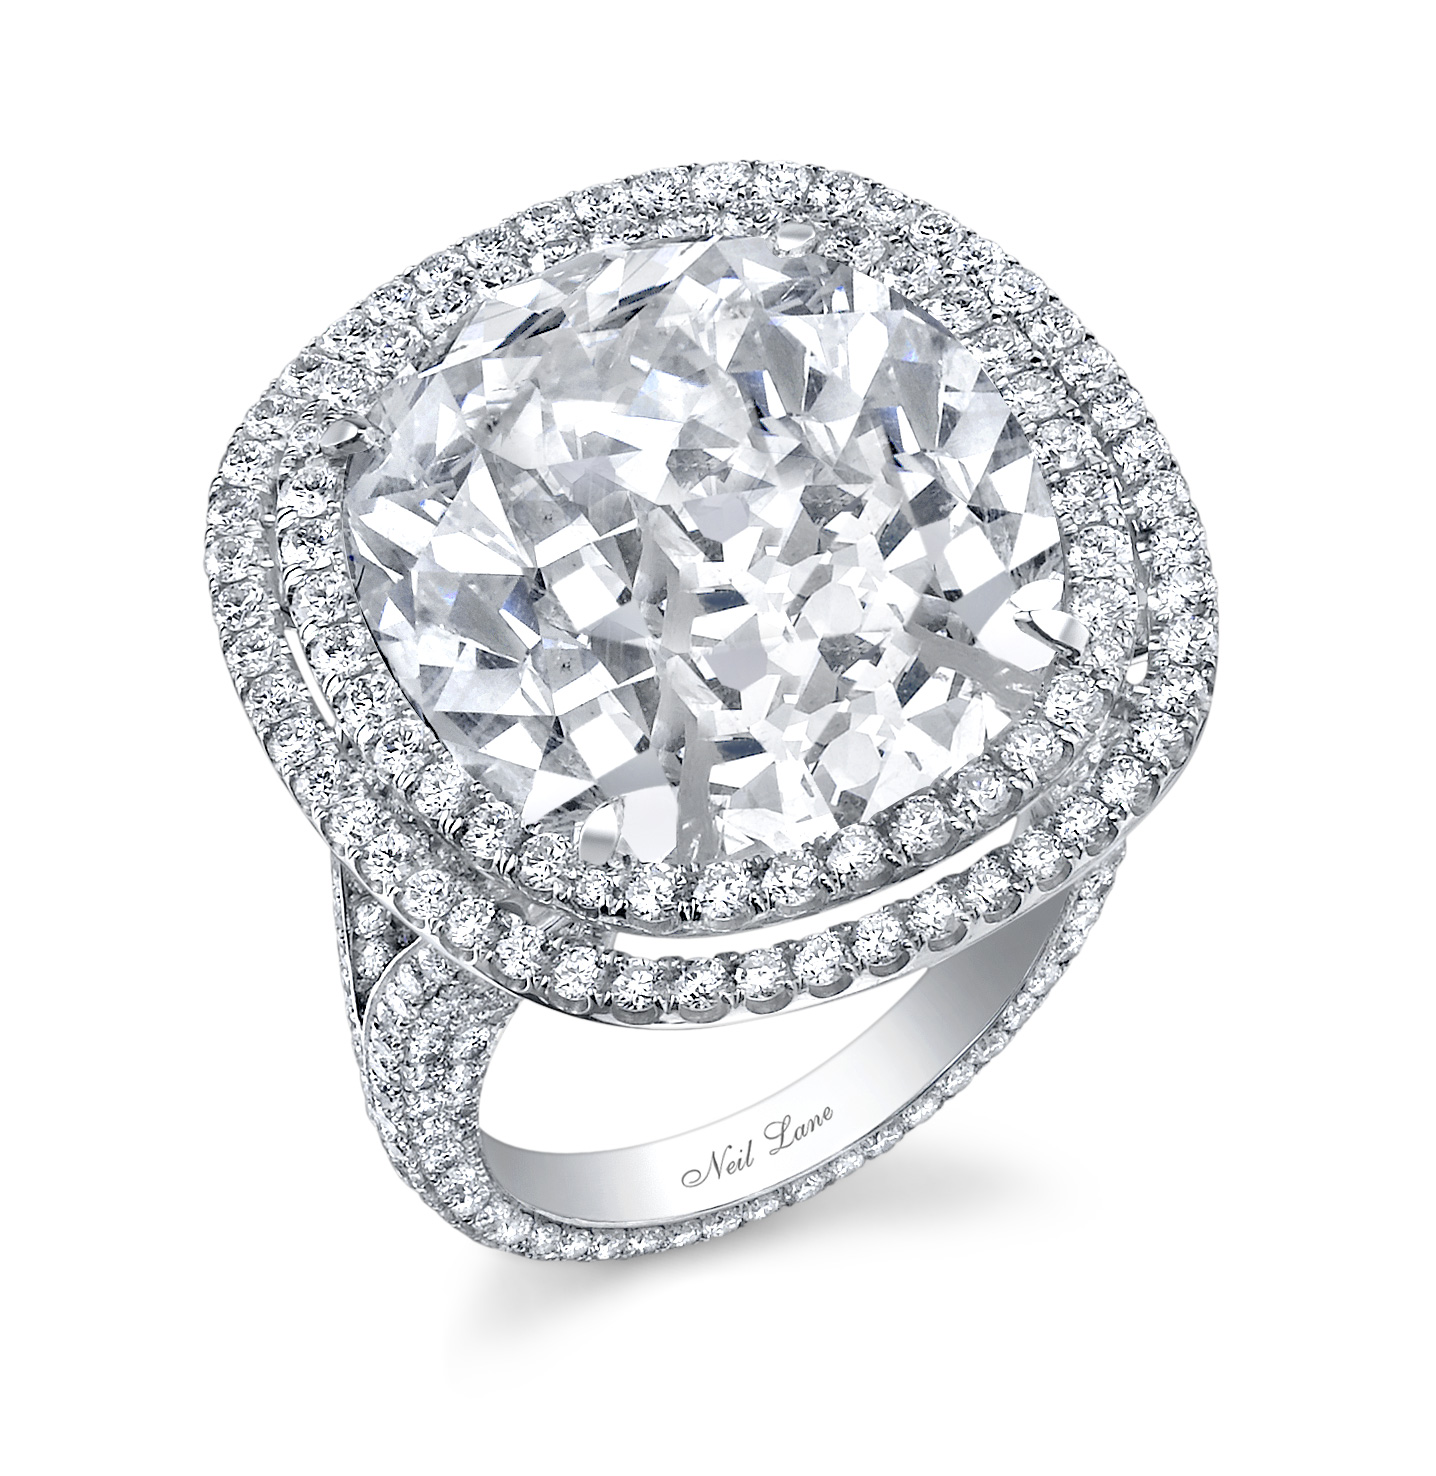 Kinds of the popular engagement ring styles Ring Review